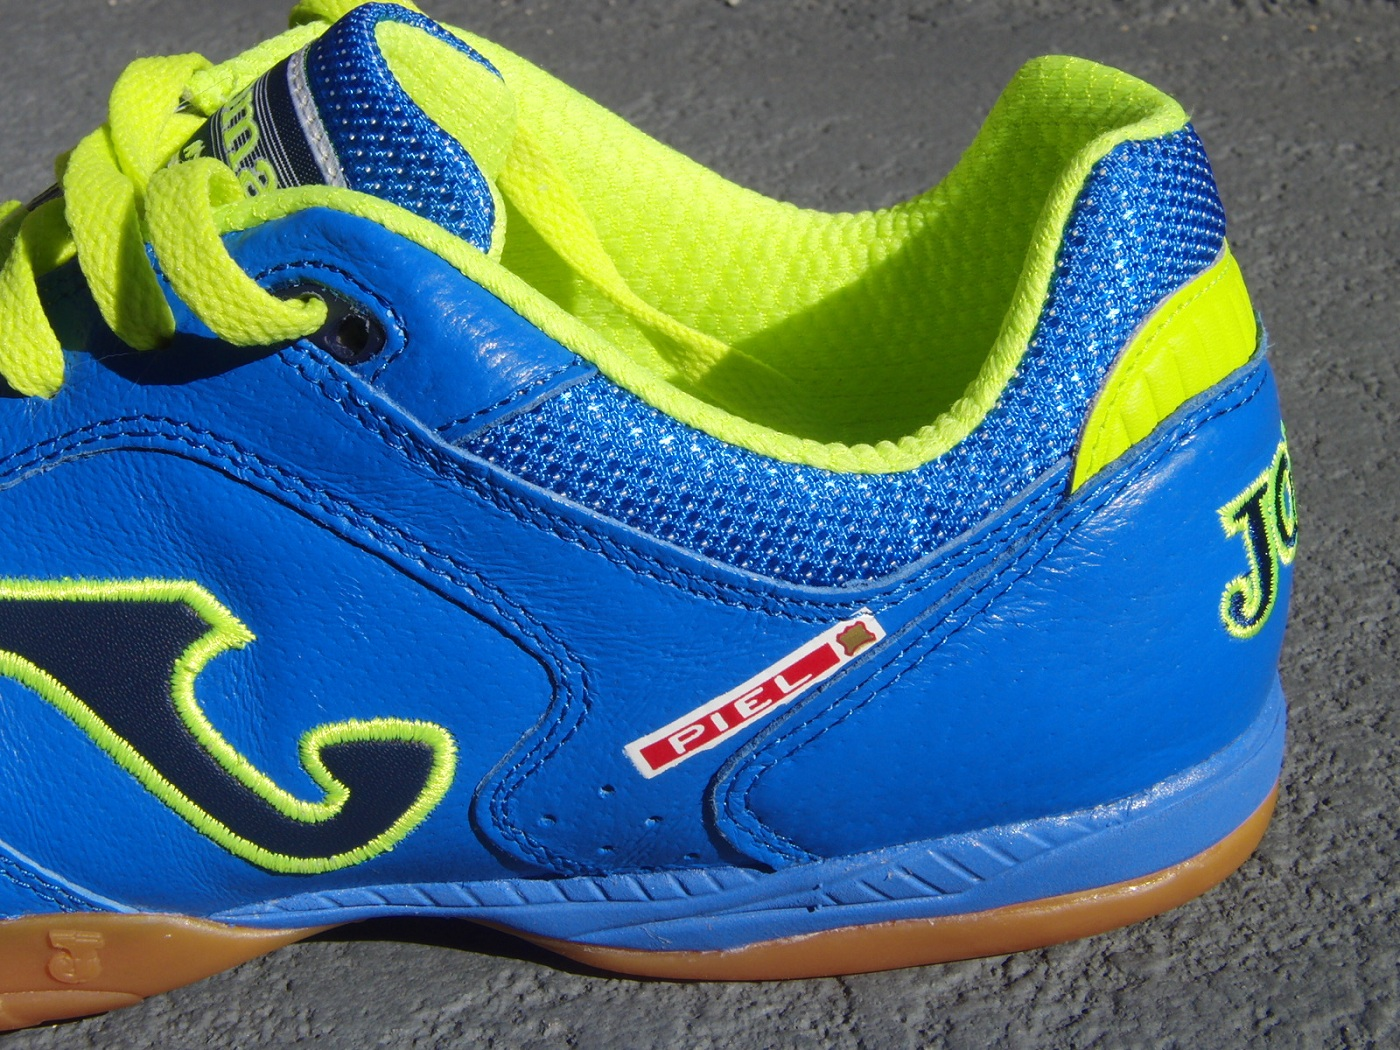 87dc25126 Joma Top Flex Indoor Shoe Review